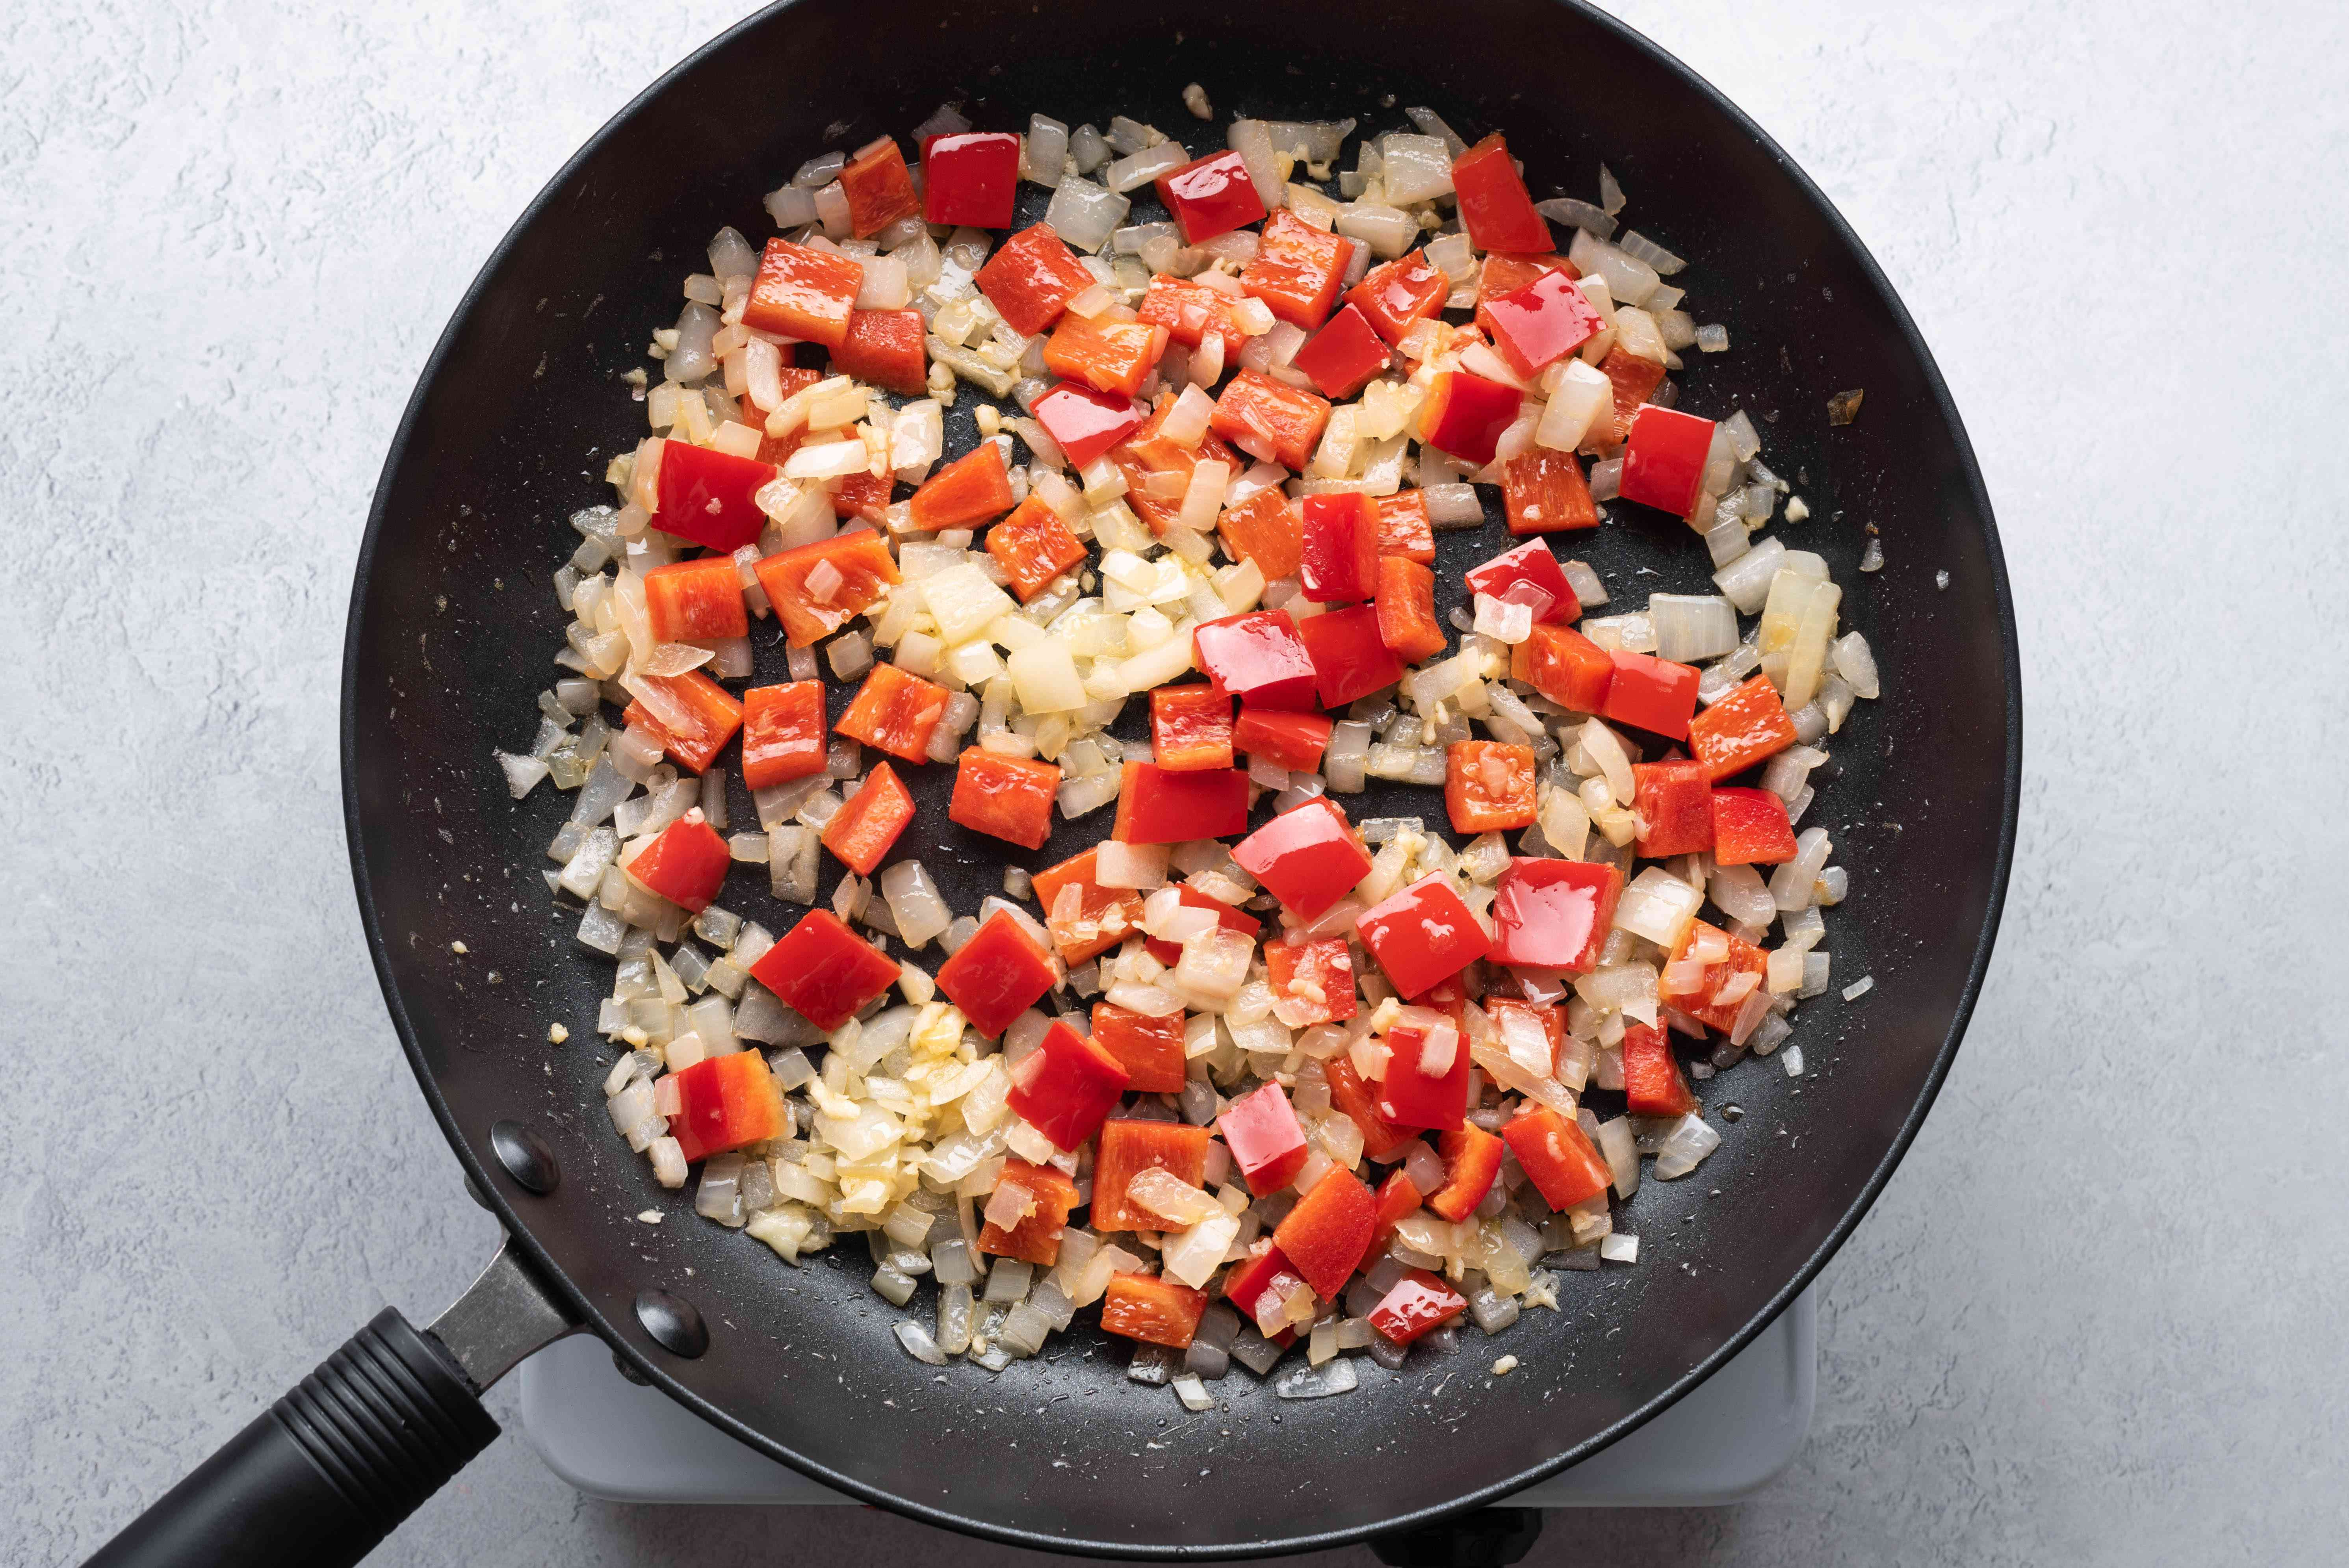 garlic, red pepper and onions cooking in a pan